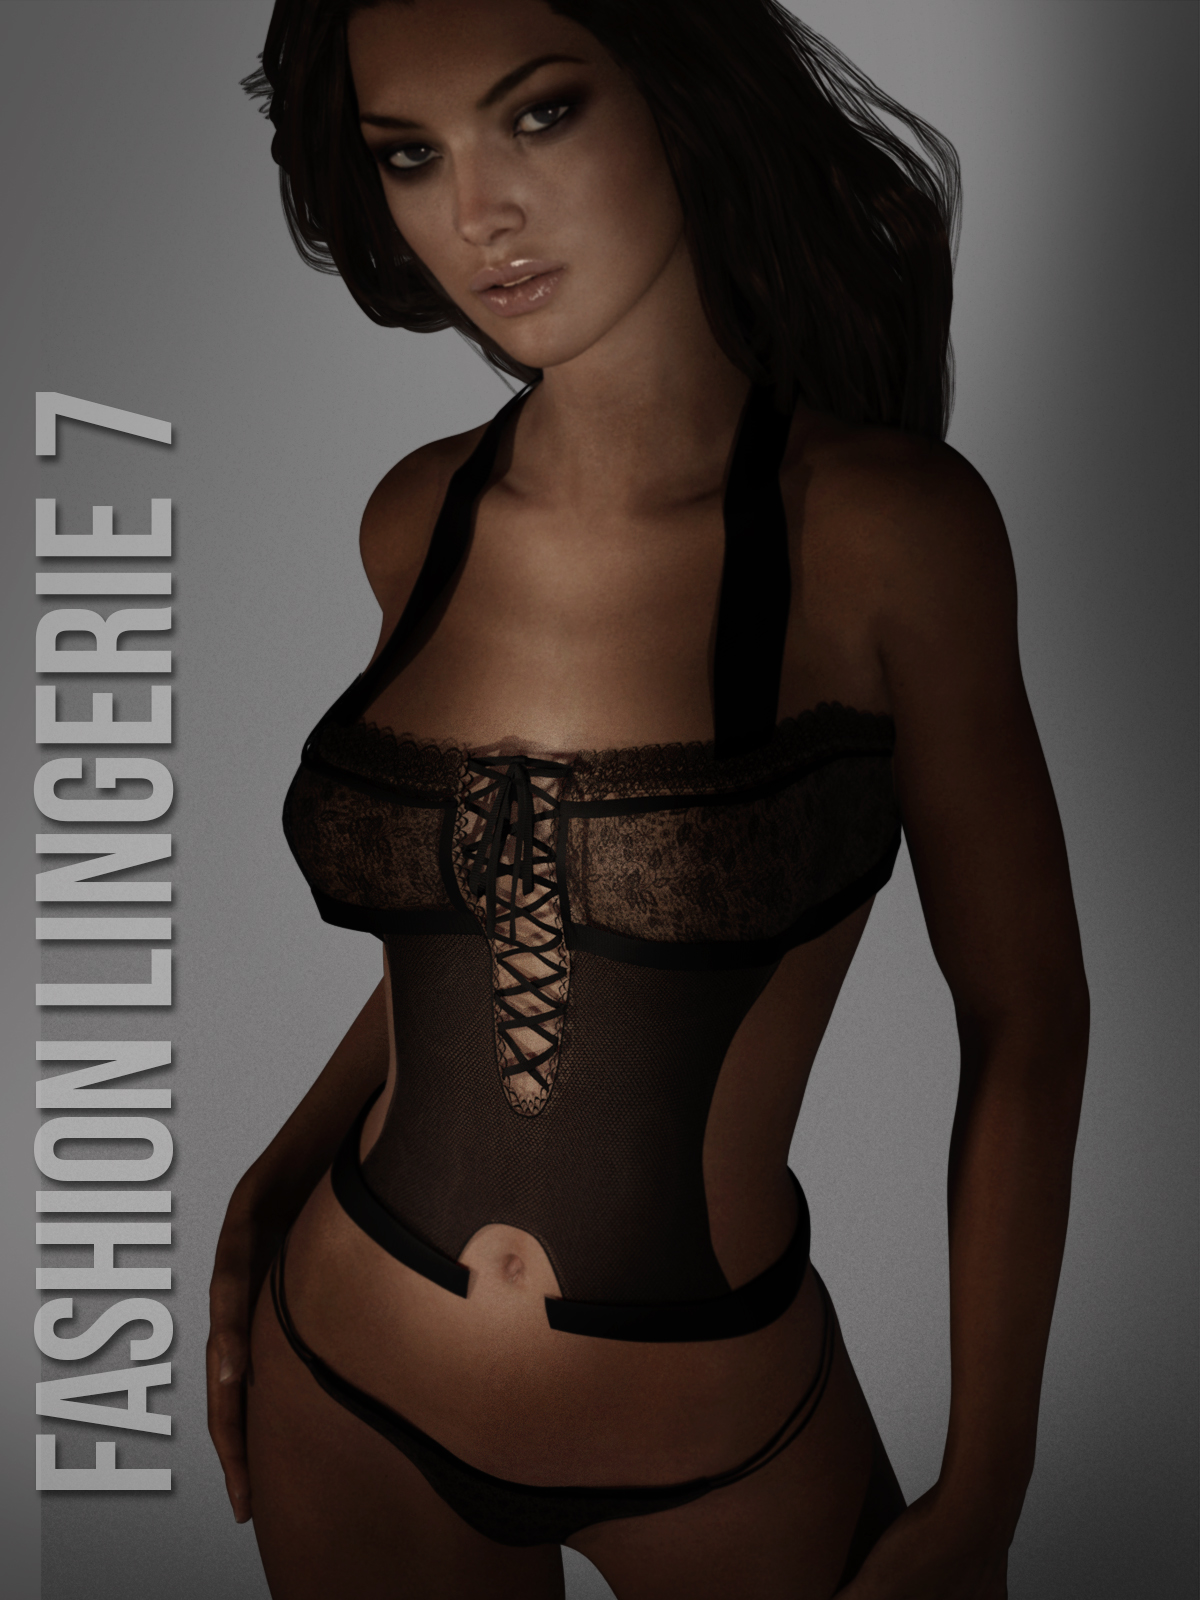 X-Fashion Lingerie7  for G3F by xtrart-3d